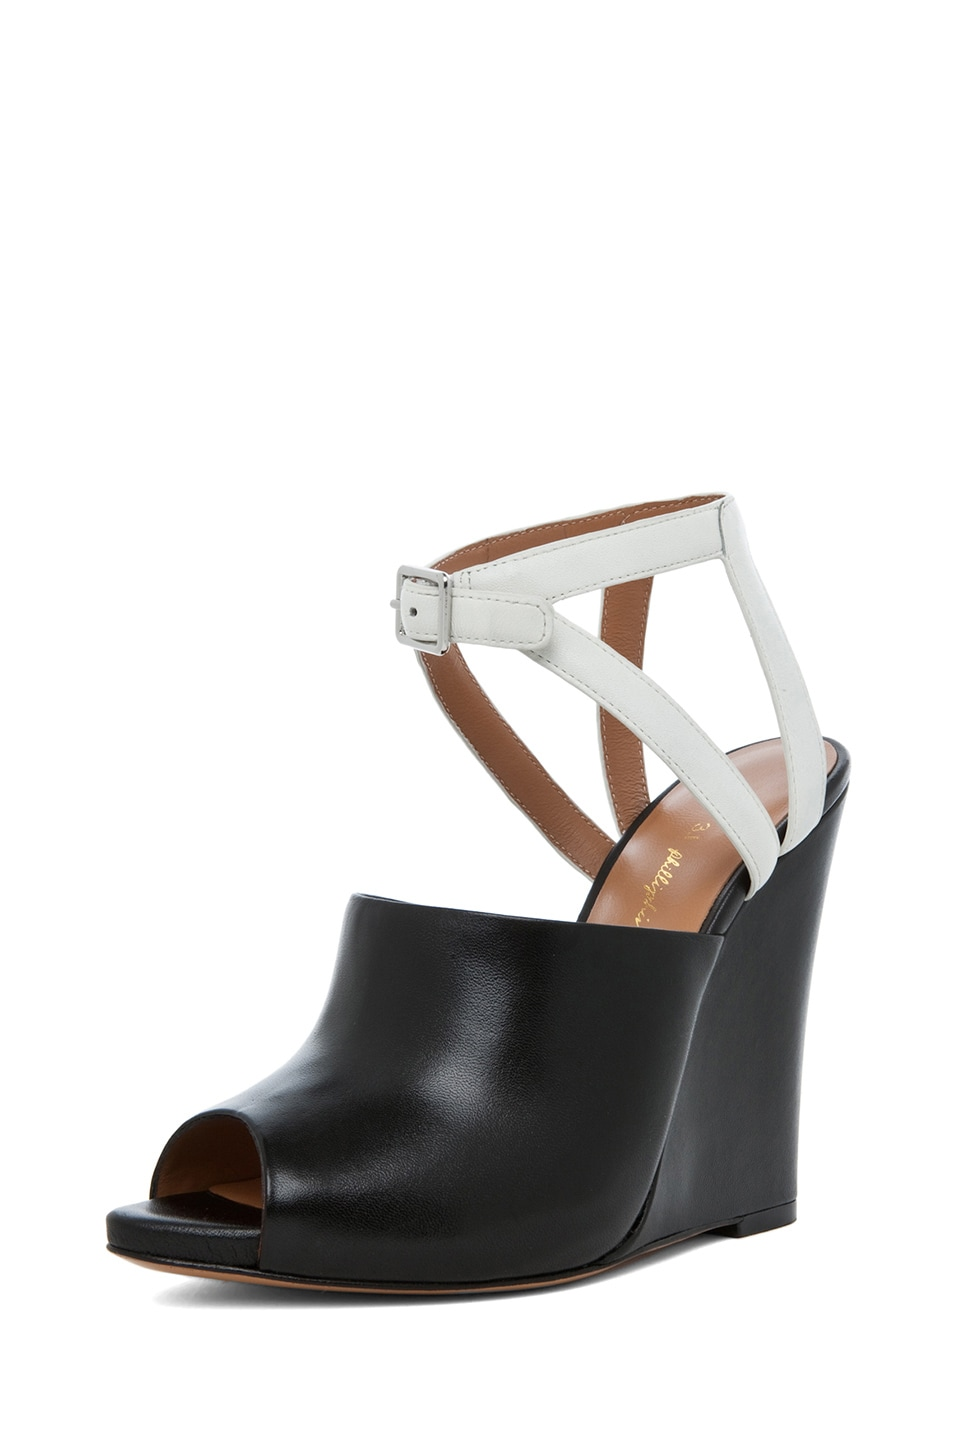 Image 2 of 3.1 phillip lim Juliette Leather Wedge in Black & White